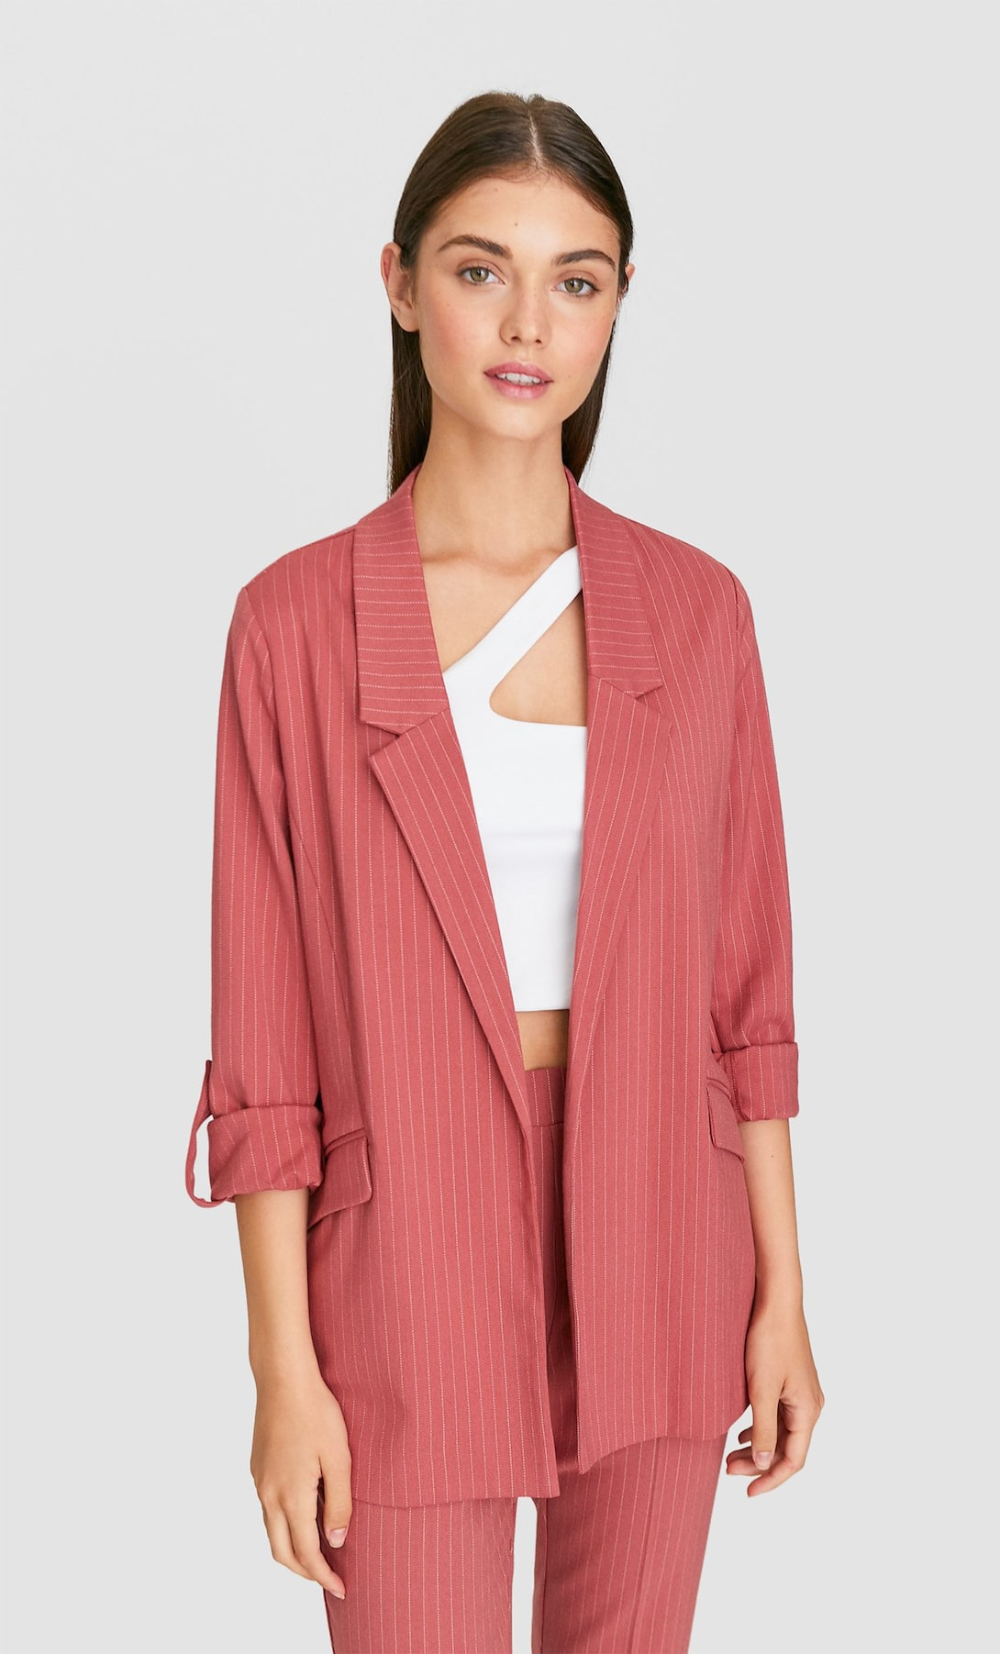 Striped Flowing Blazer Women S Blazers Stradivarius Greek Blazers For Women Blazer Womens Blazers